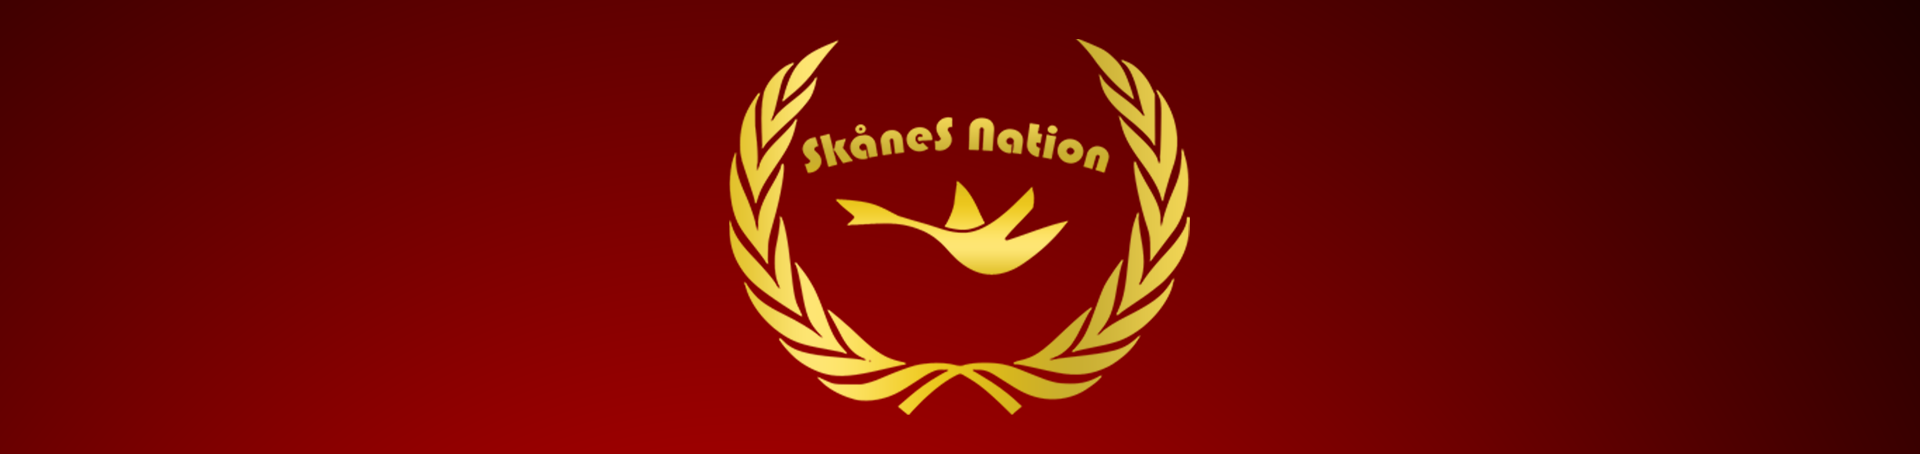 SkåneS Nation